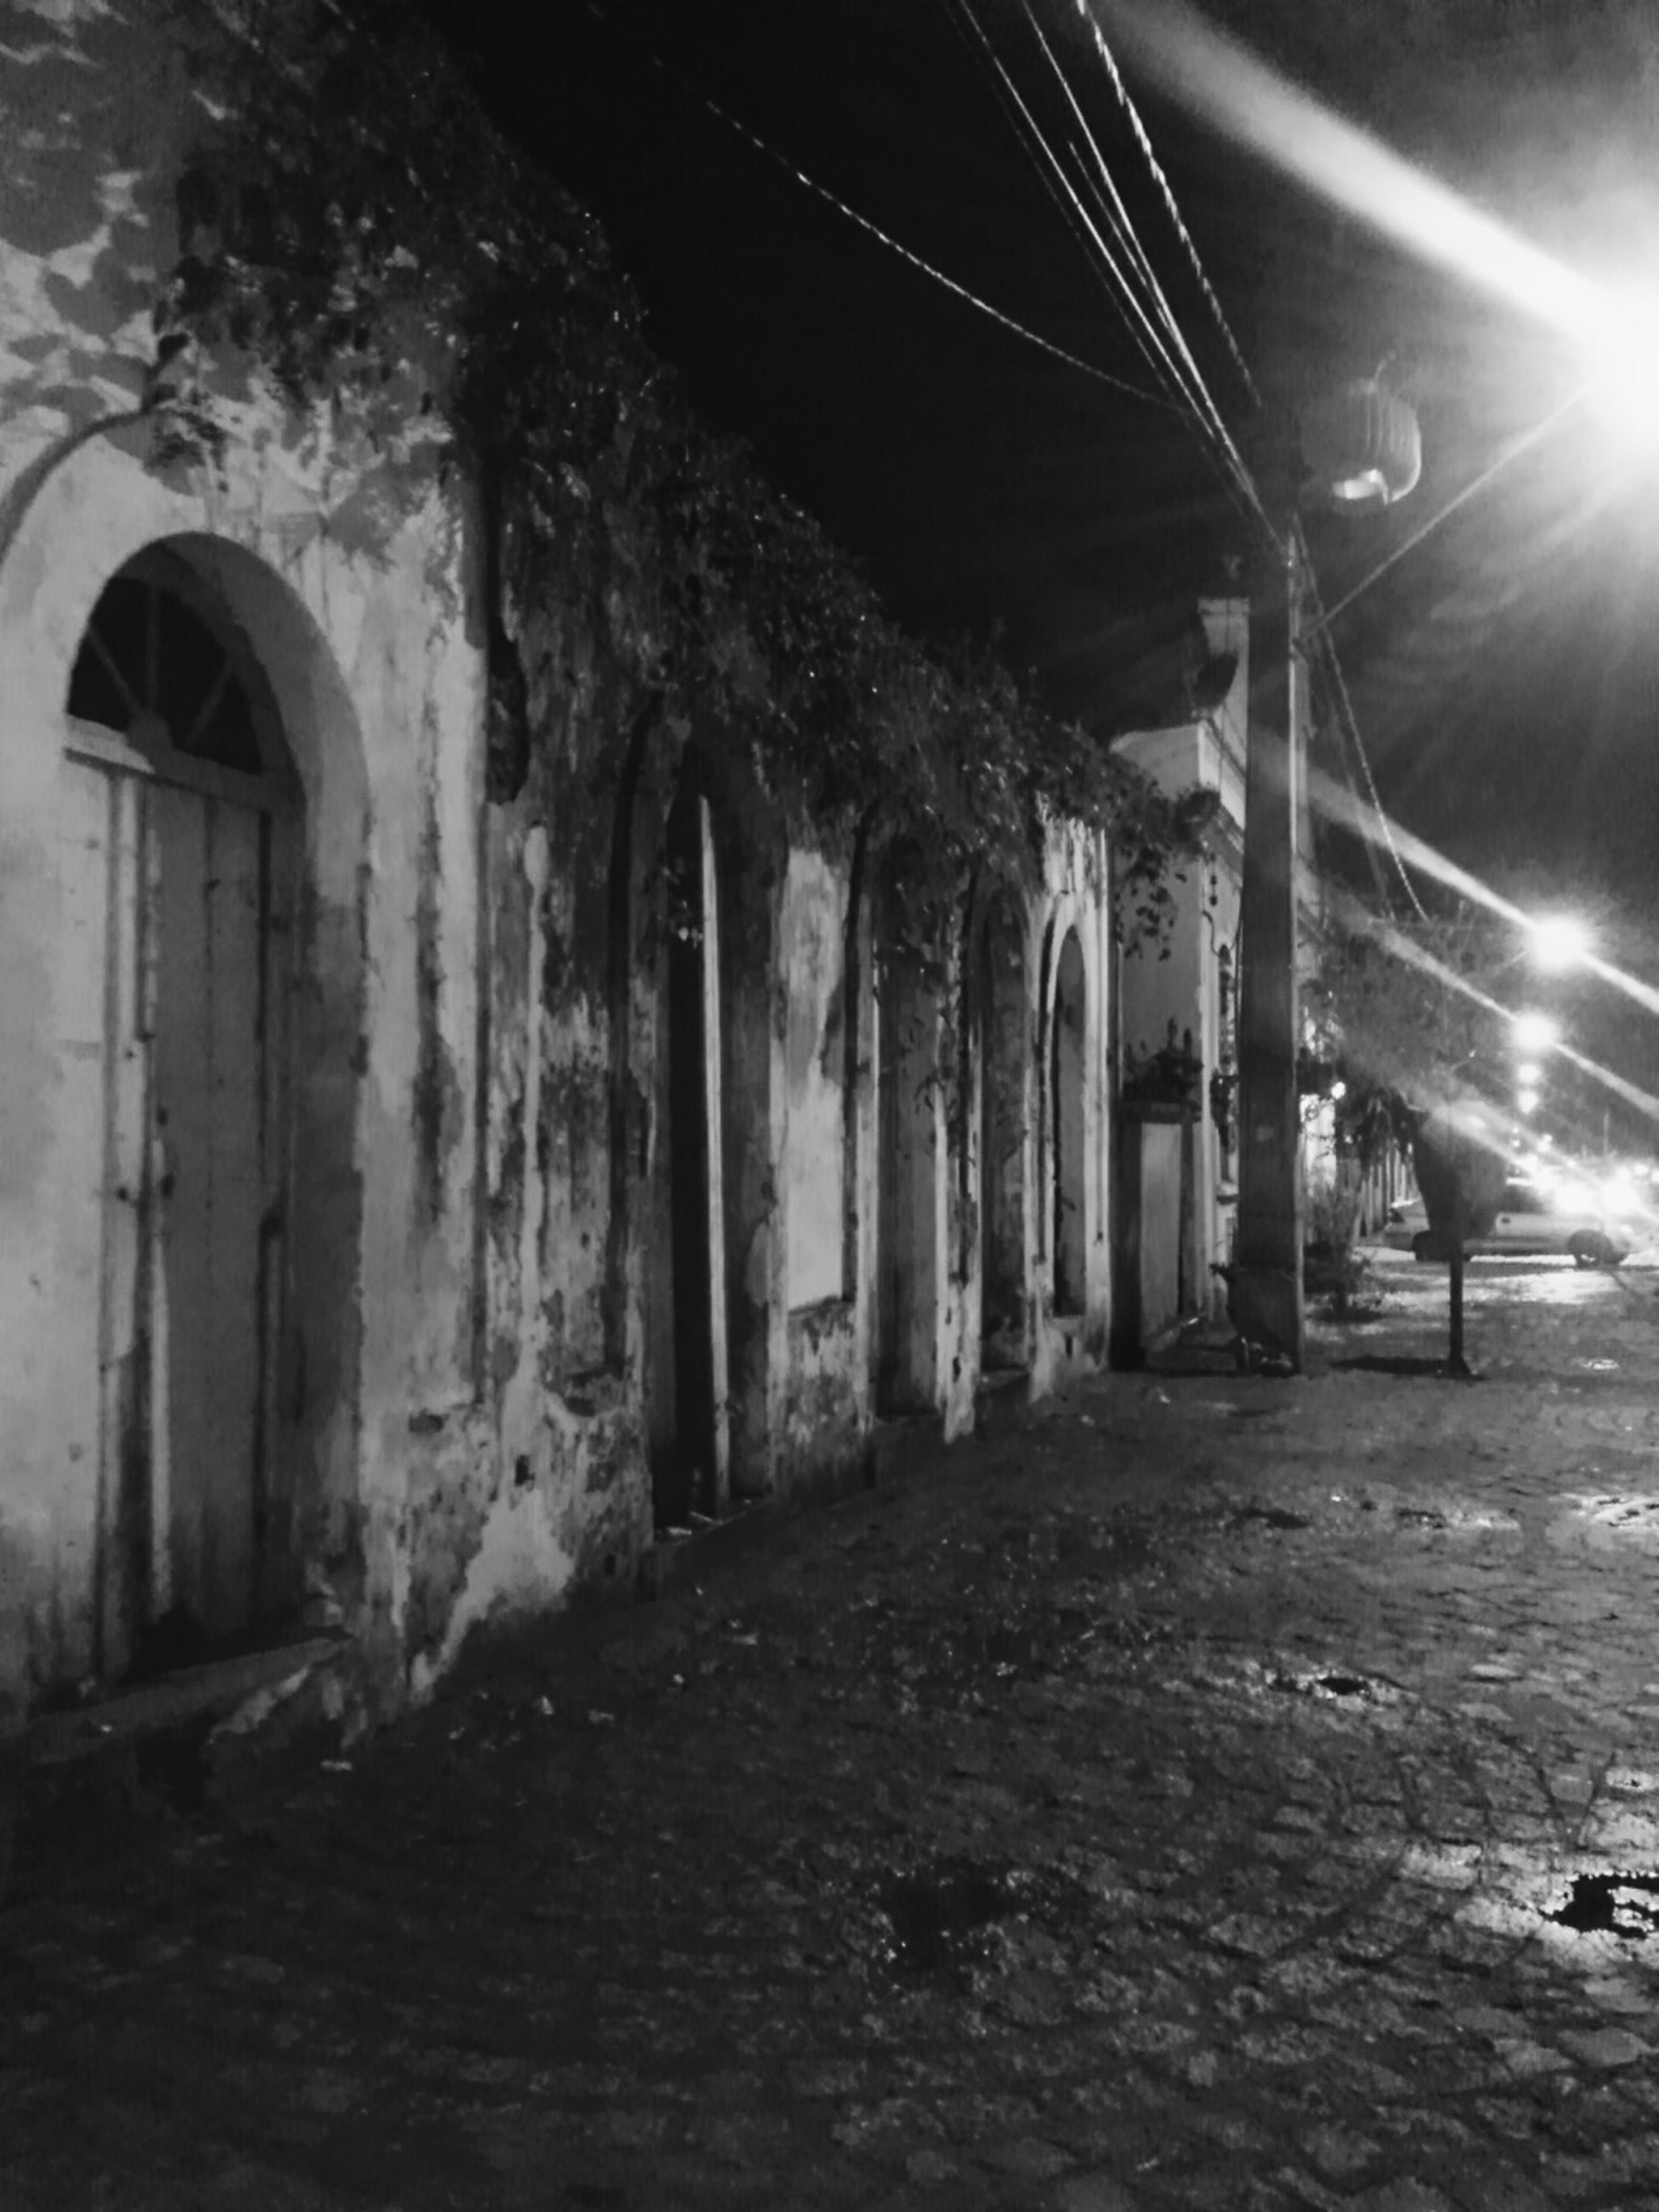 illuminated, architecture, built structure, night, abandoned, building exterior, lighting equipment, the way forward, old, damaged, building, indoors, obsolete, run-down, street, street light, deterioration, wall - building feature, tunnel, interior